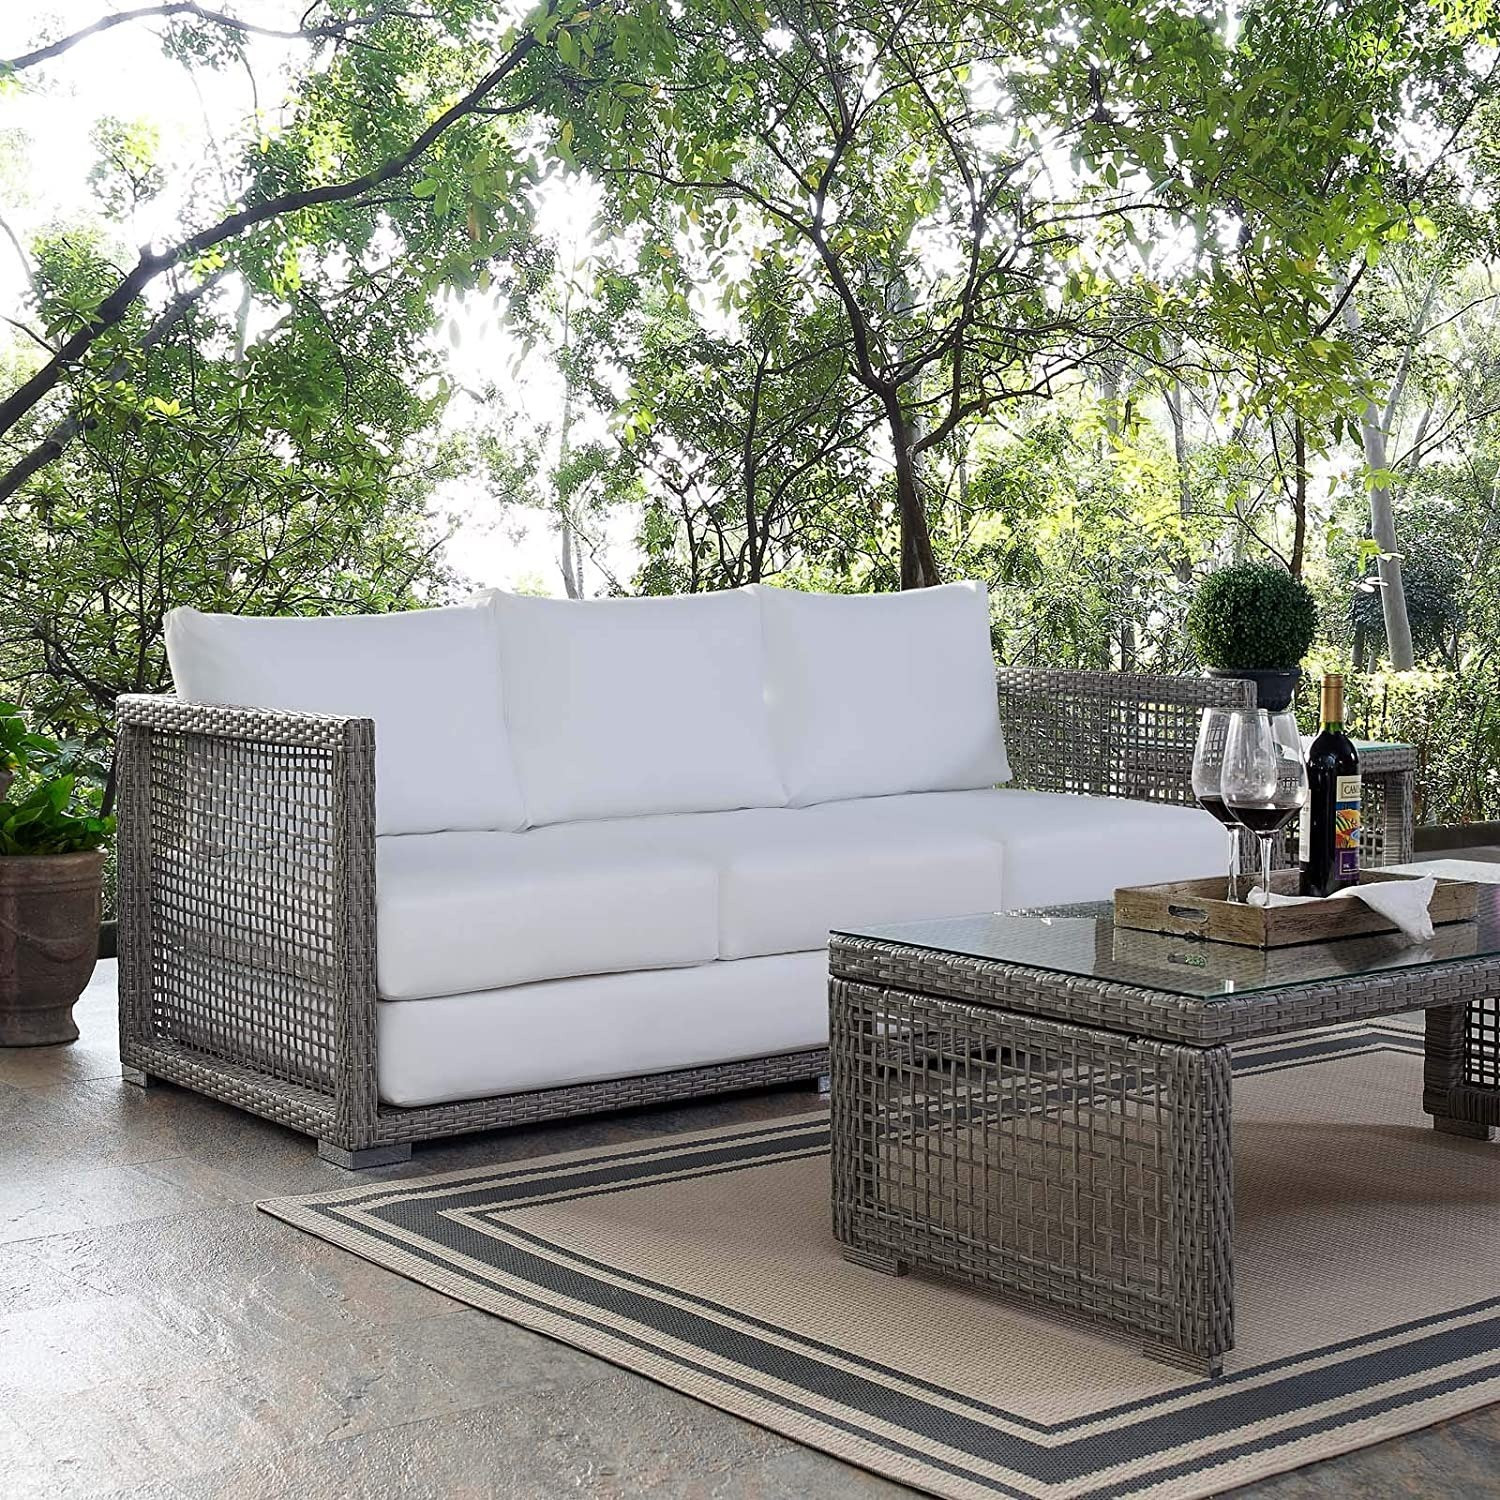 Outdoor Sofa In Gray Rattan Weave Finish - image-6